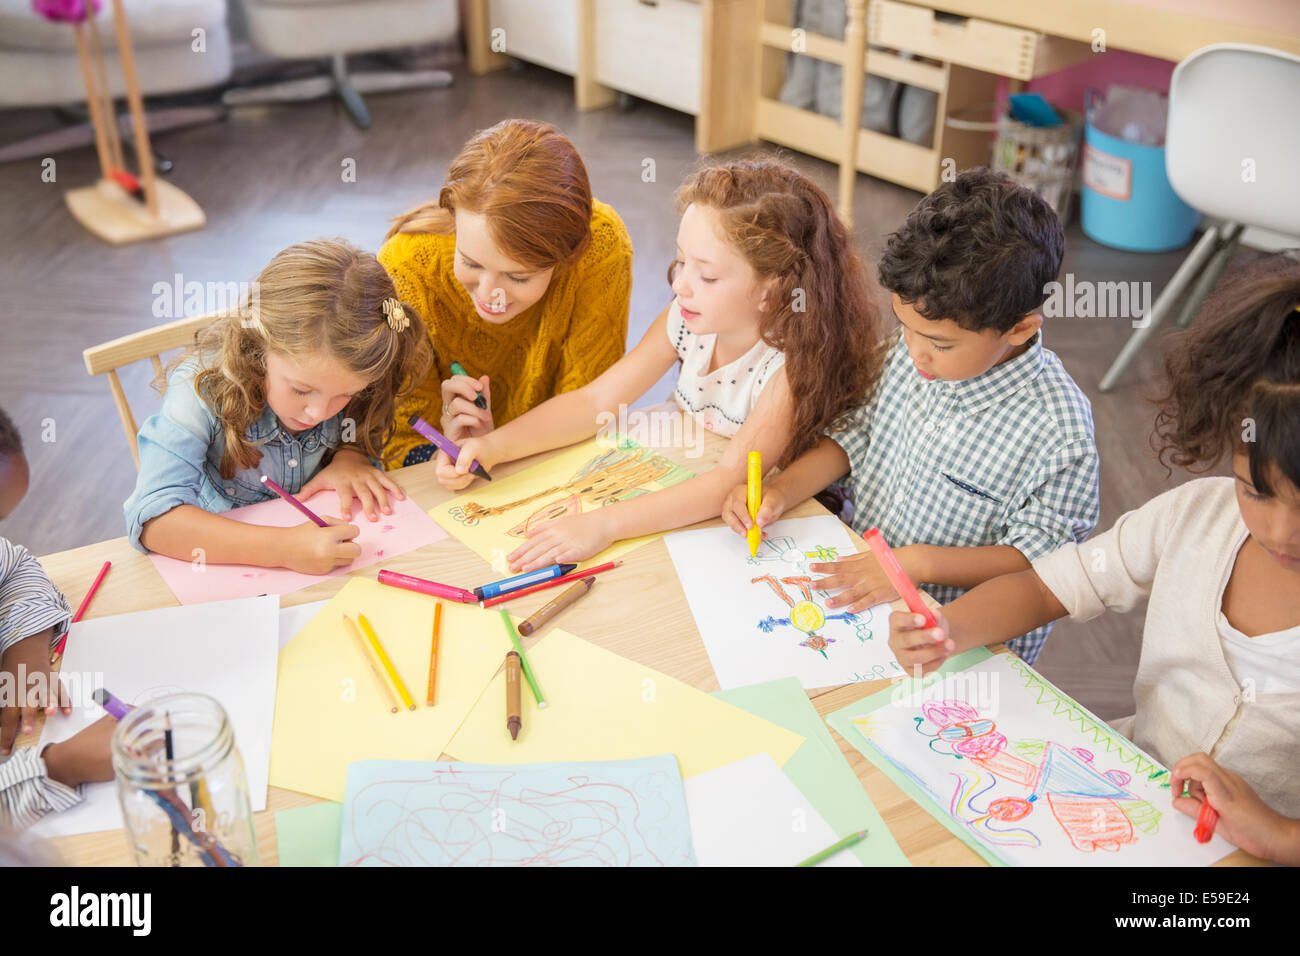 Students and teacher drawing in classroom - Stock Image